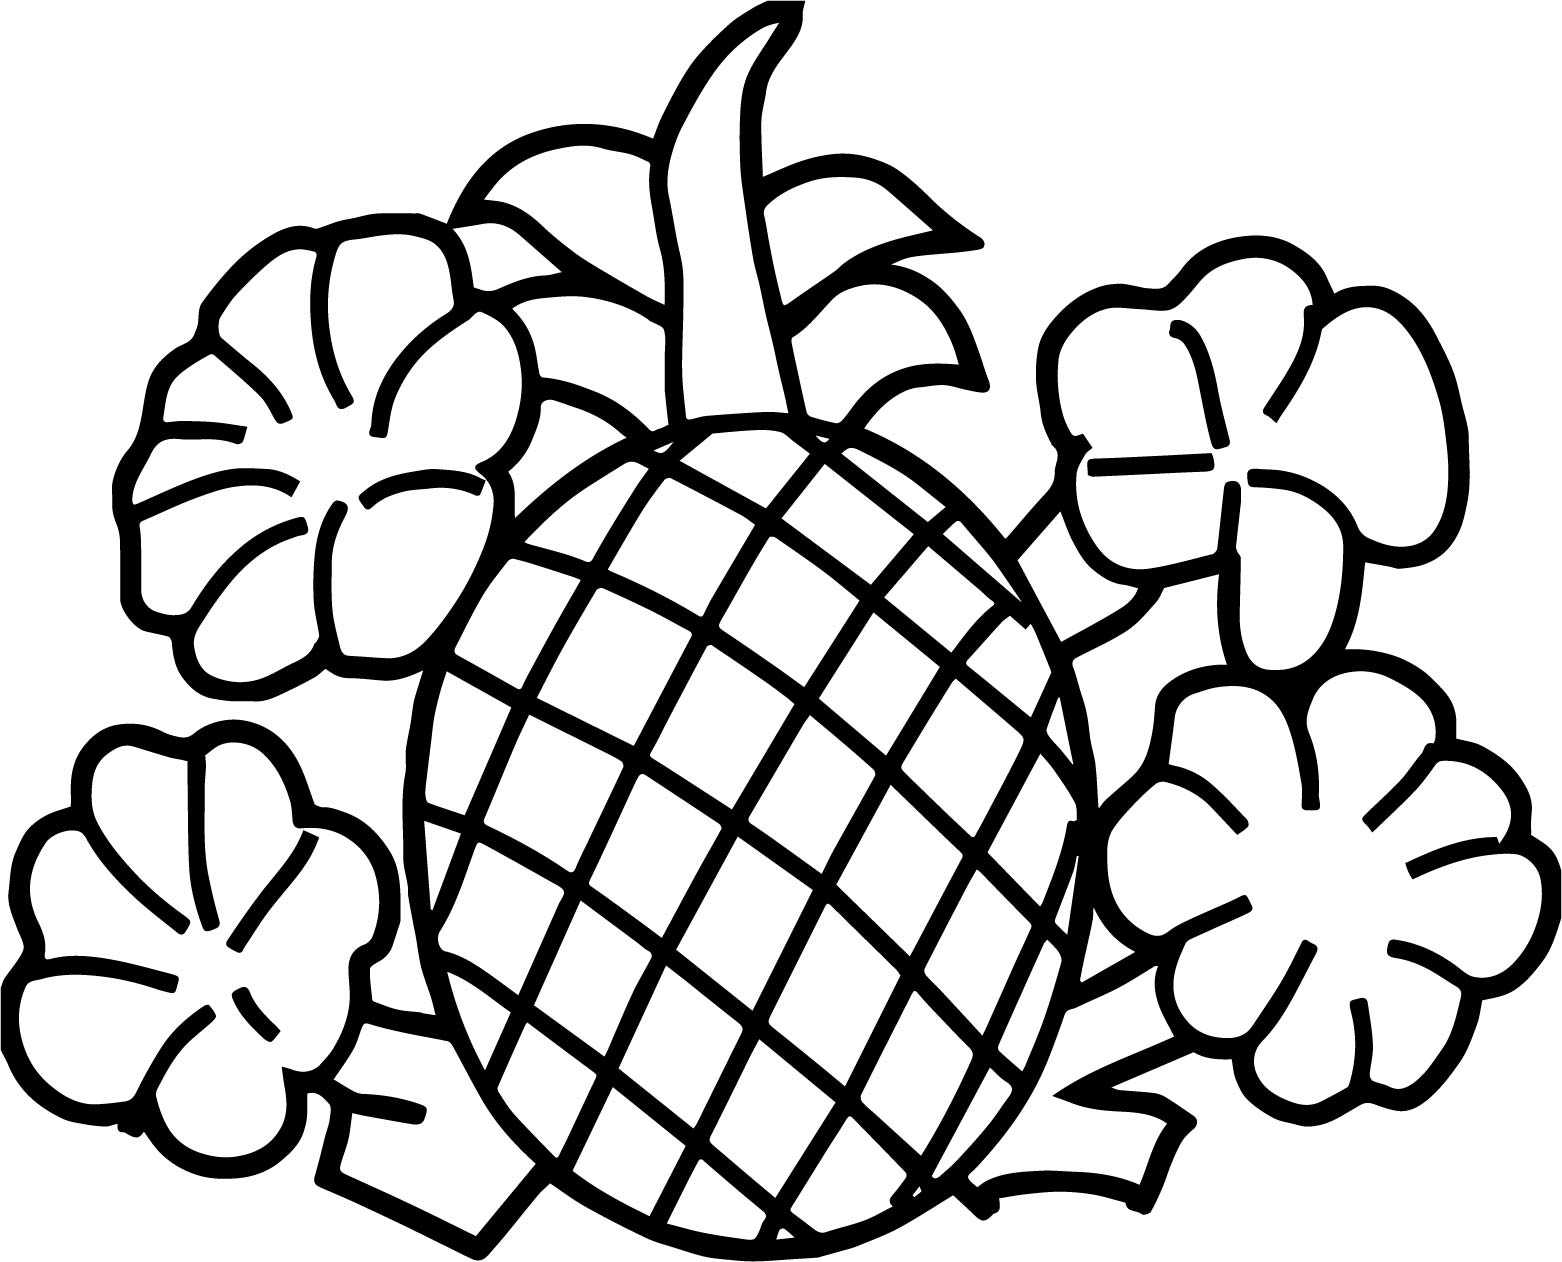 Sao Para Colorear: Pineapple Coloring Pages To Download And Print For Free